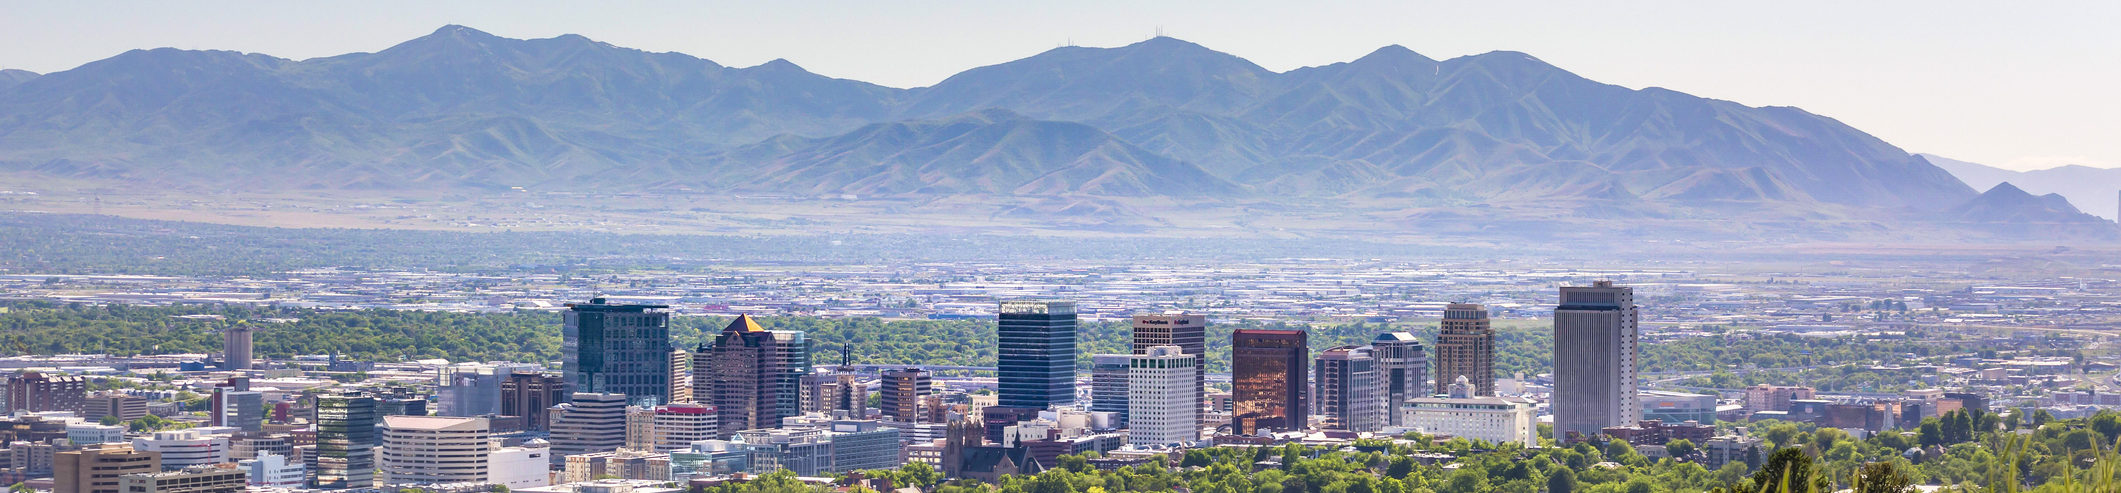 Salt Lake City Views with downtown mountains